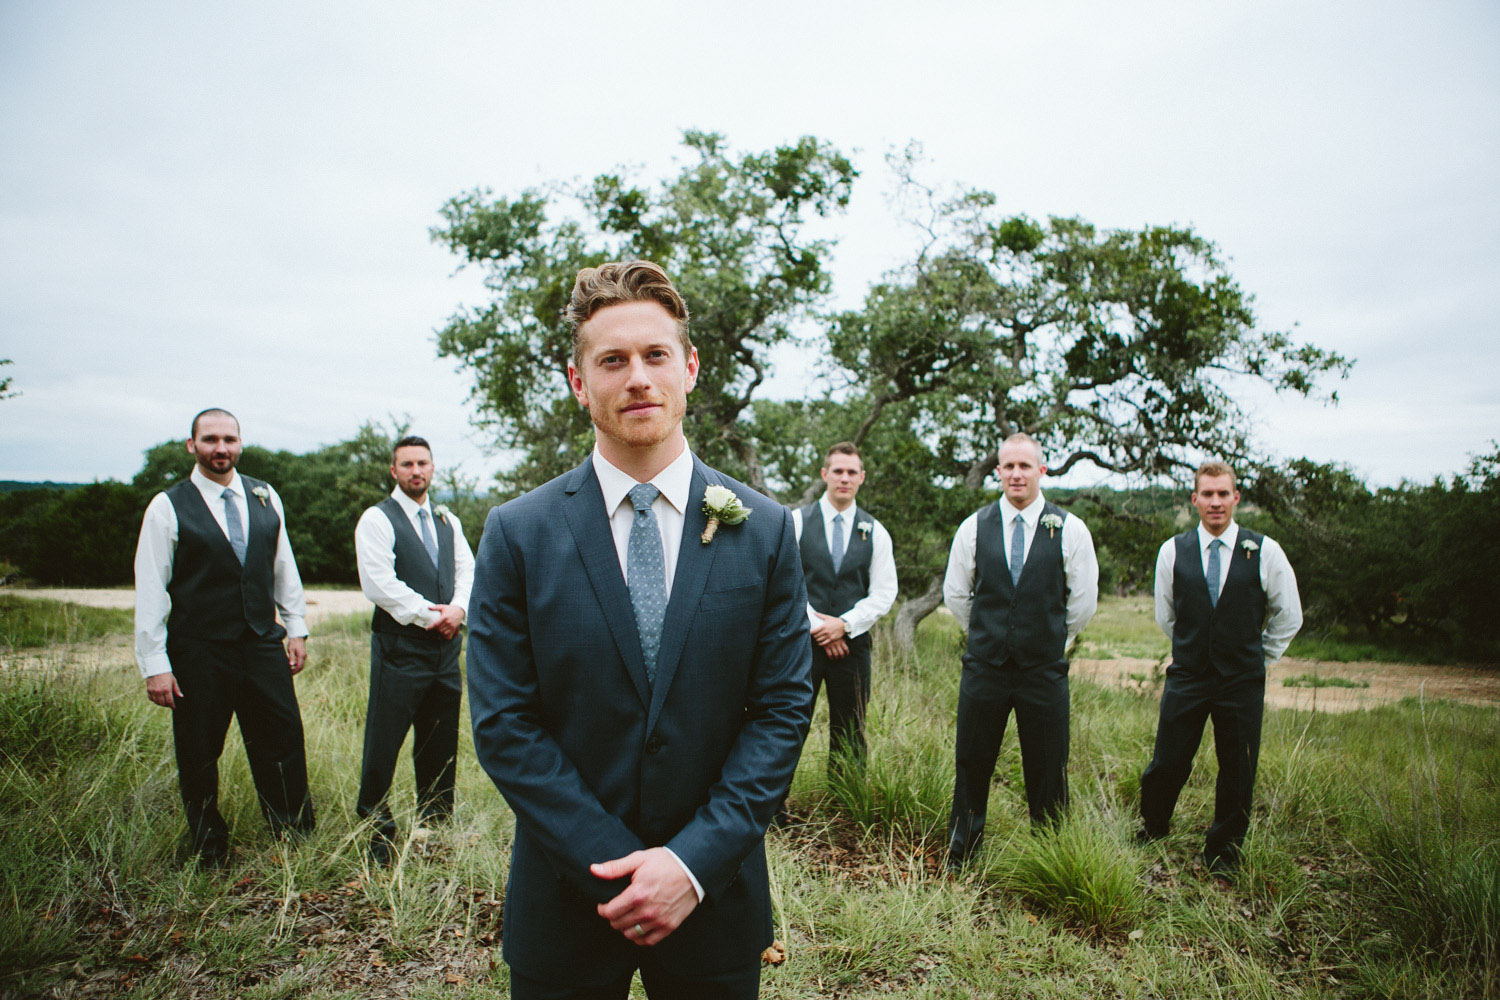 Groomsmen and Groom at Vista West Ranch | Lisa Woods Photography